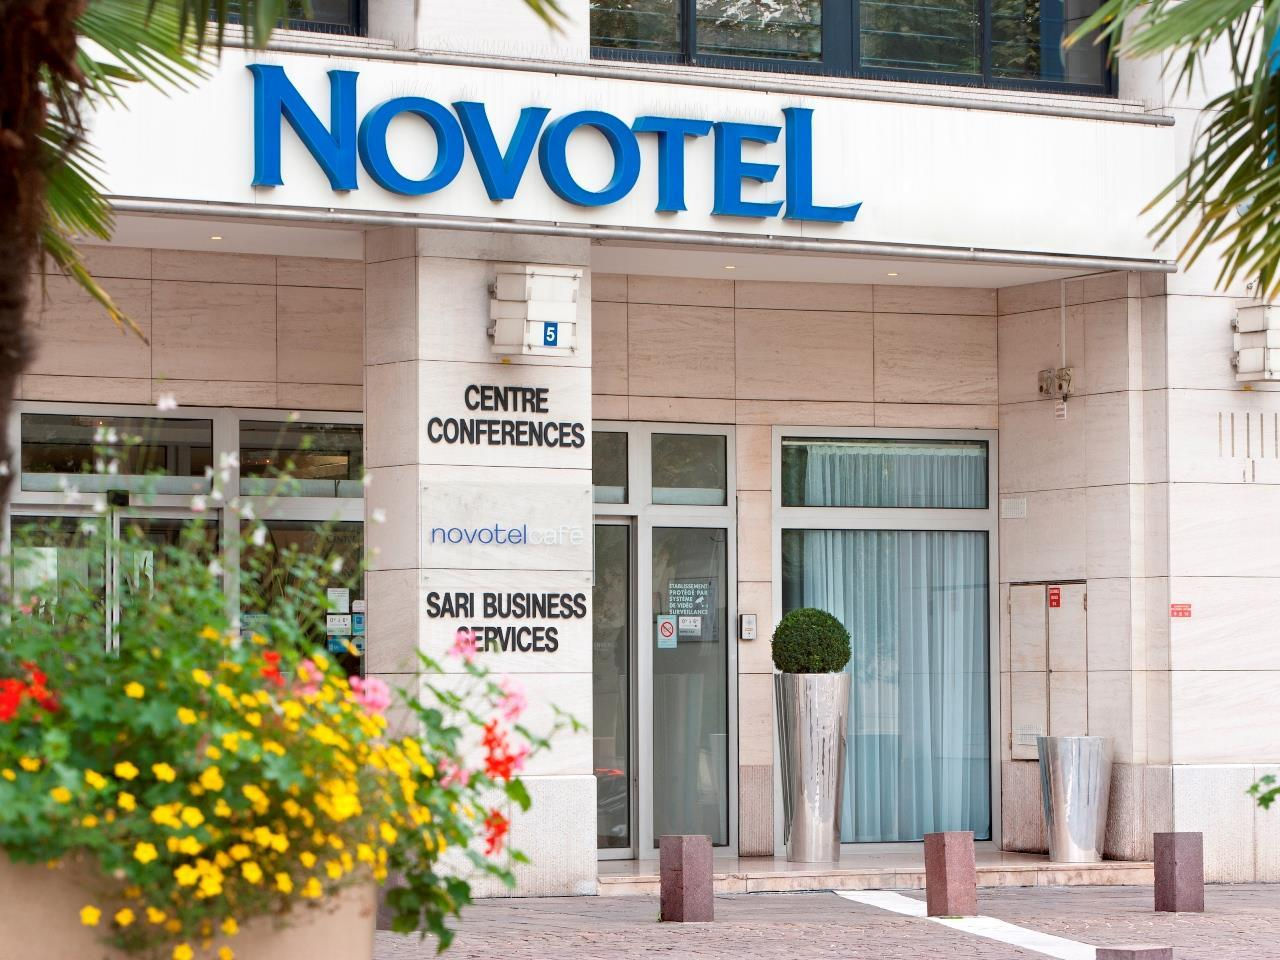 Adagio Access Paris Porte De Charenton Novotel Paris Sud Porte De Charenton Hotel In France Room Deals